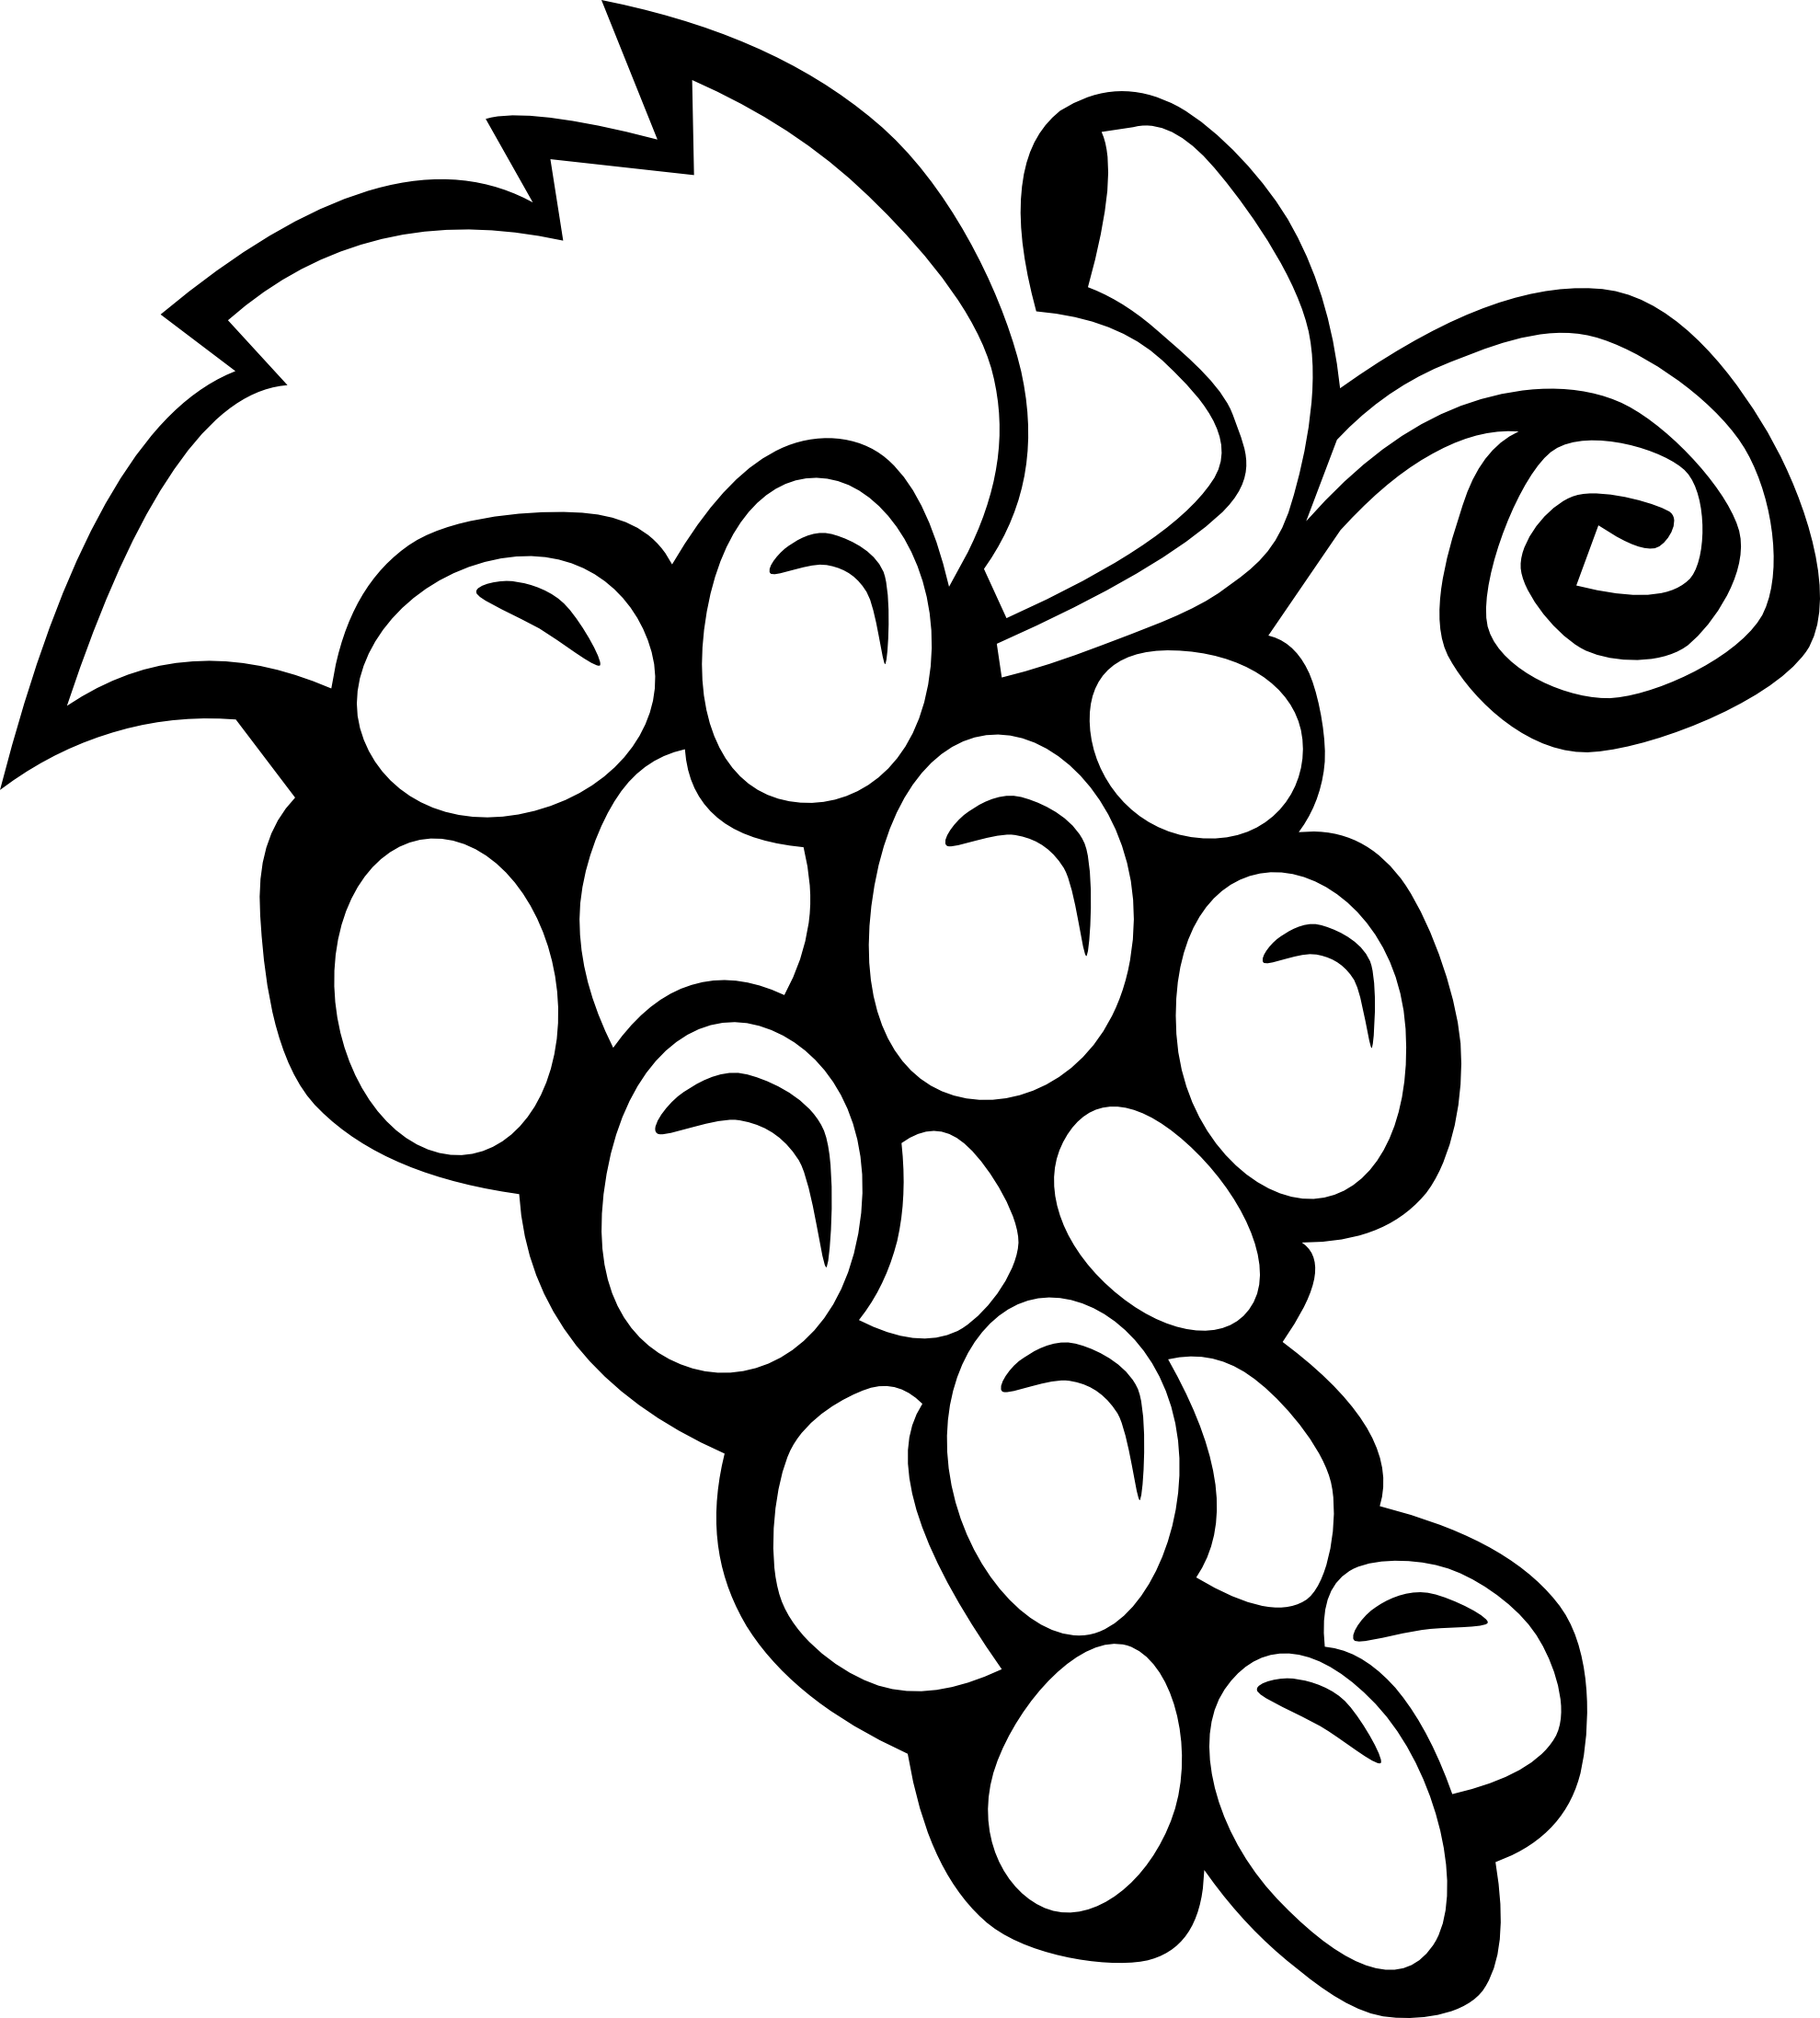 Blueberry black and white. Strawberries clipart outline